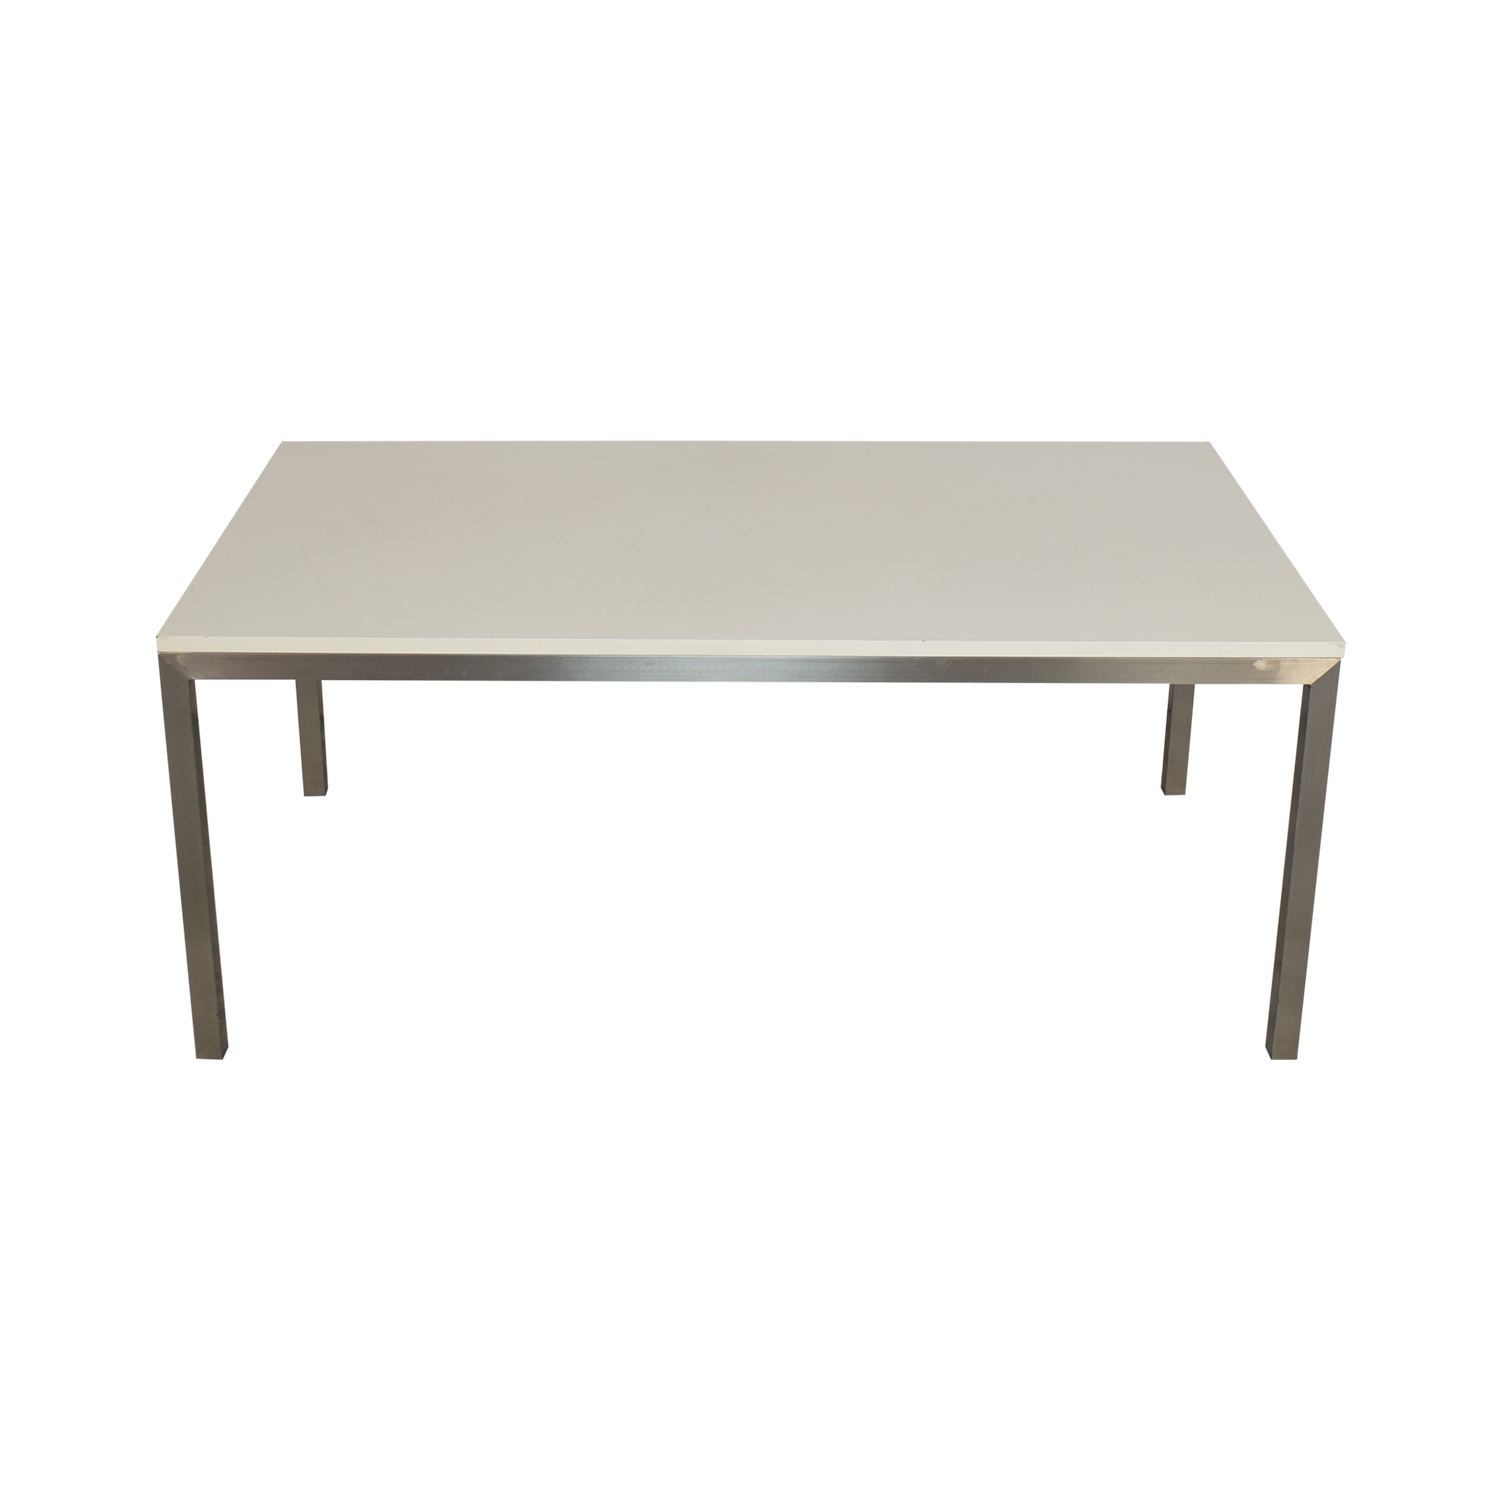 buy Crate & Barrel Crate & Barrel Parsons Dining Table online